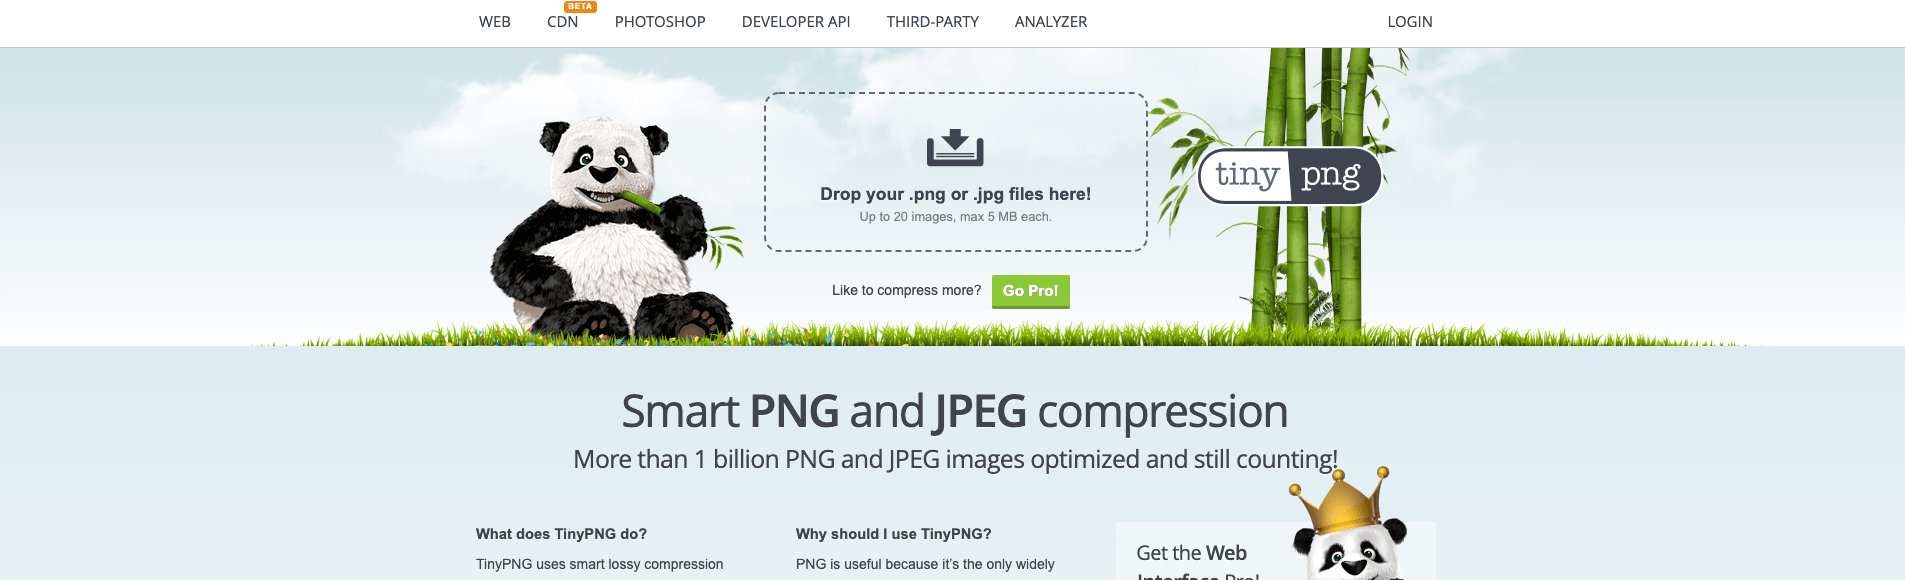 compress your site images and assets